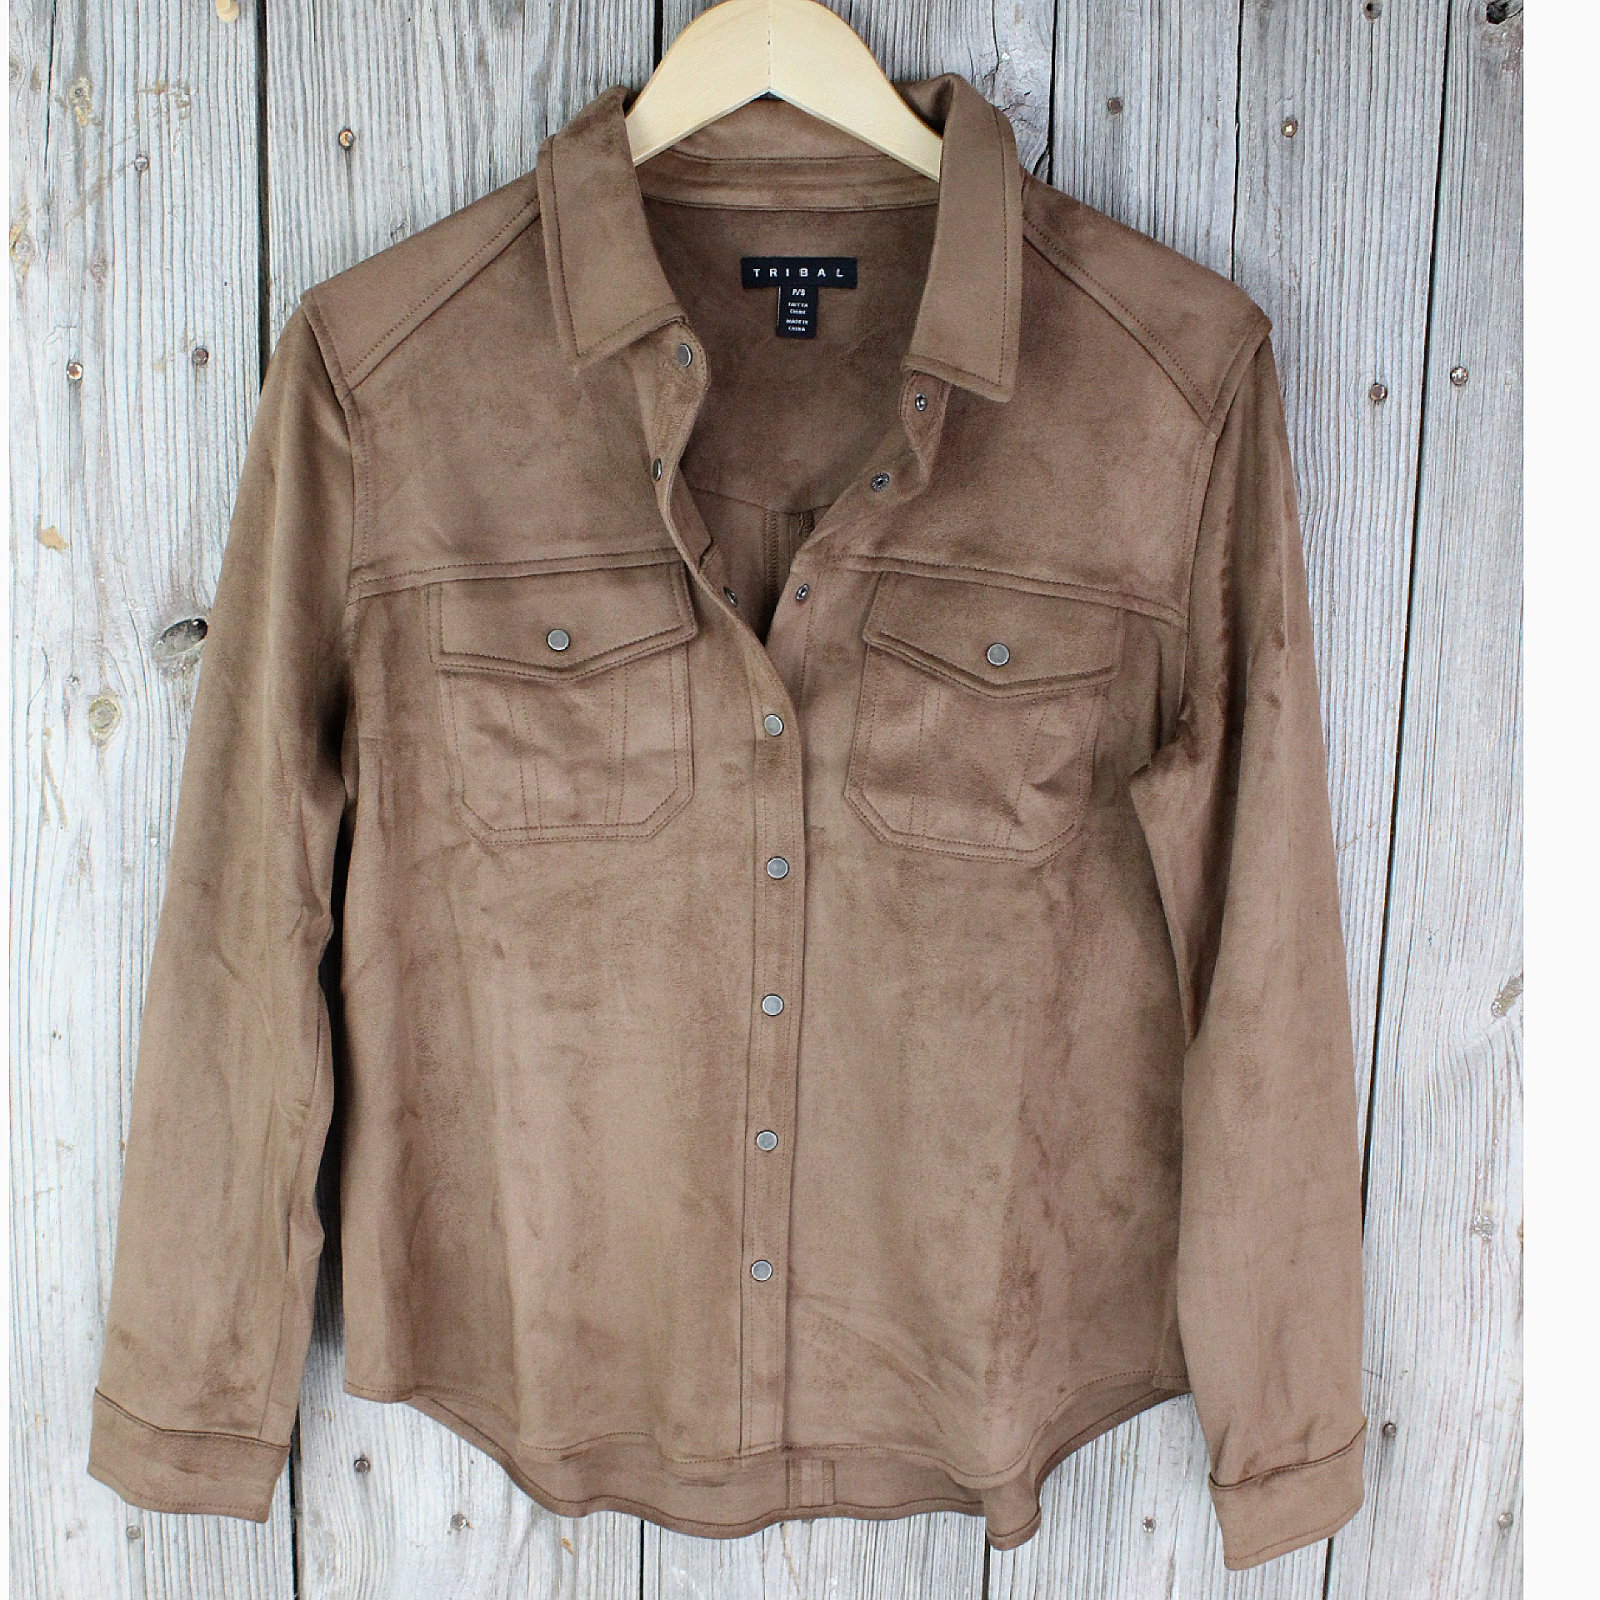 Faux Suede Shirt Jacket from Tribal